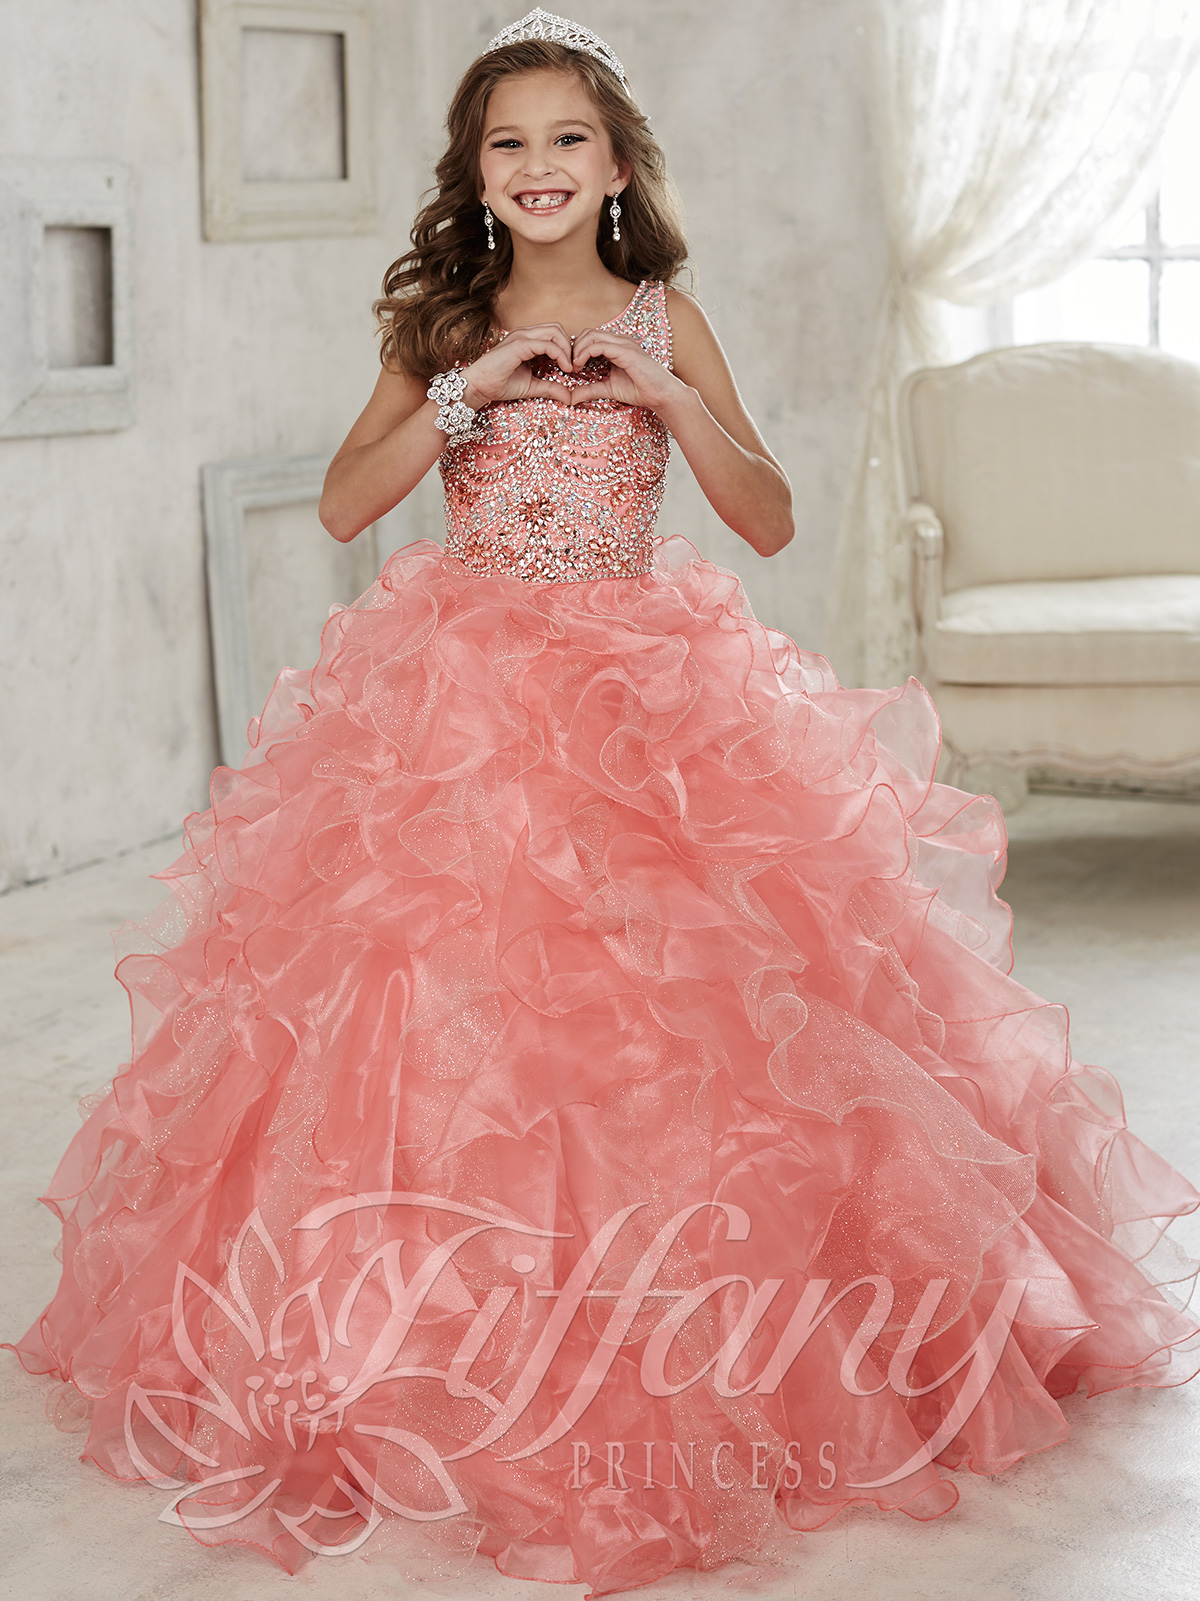 Tiffany Princess 13444 Beaded Bodice Girls Pageant Dress ...